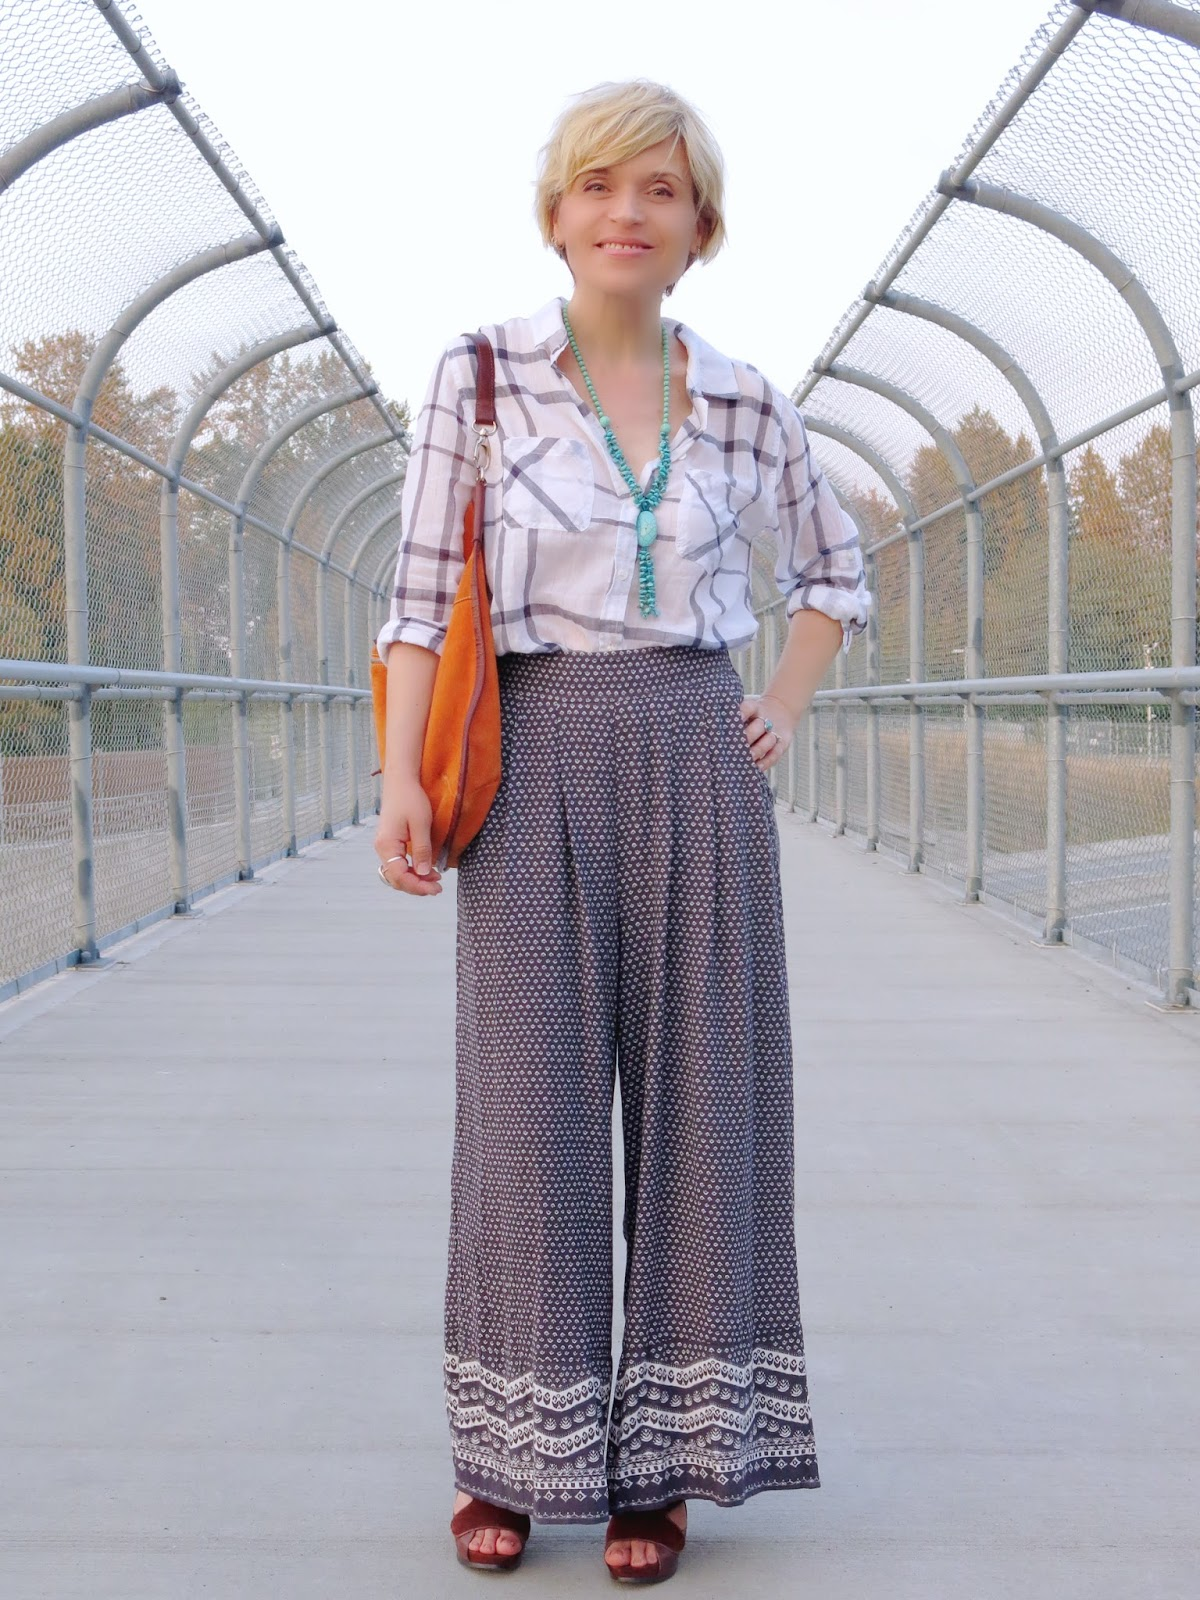 styling palazzo pants with a plaid boyfriend shirt and colourful accessories